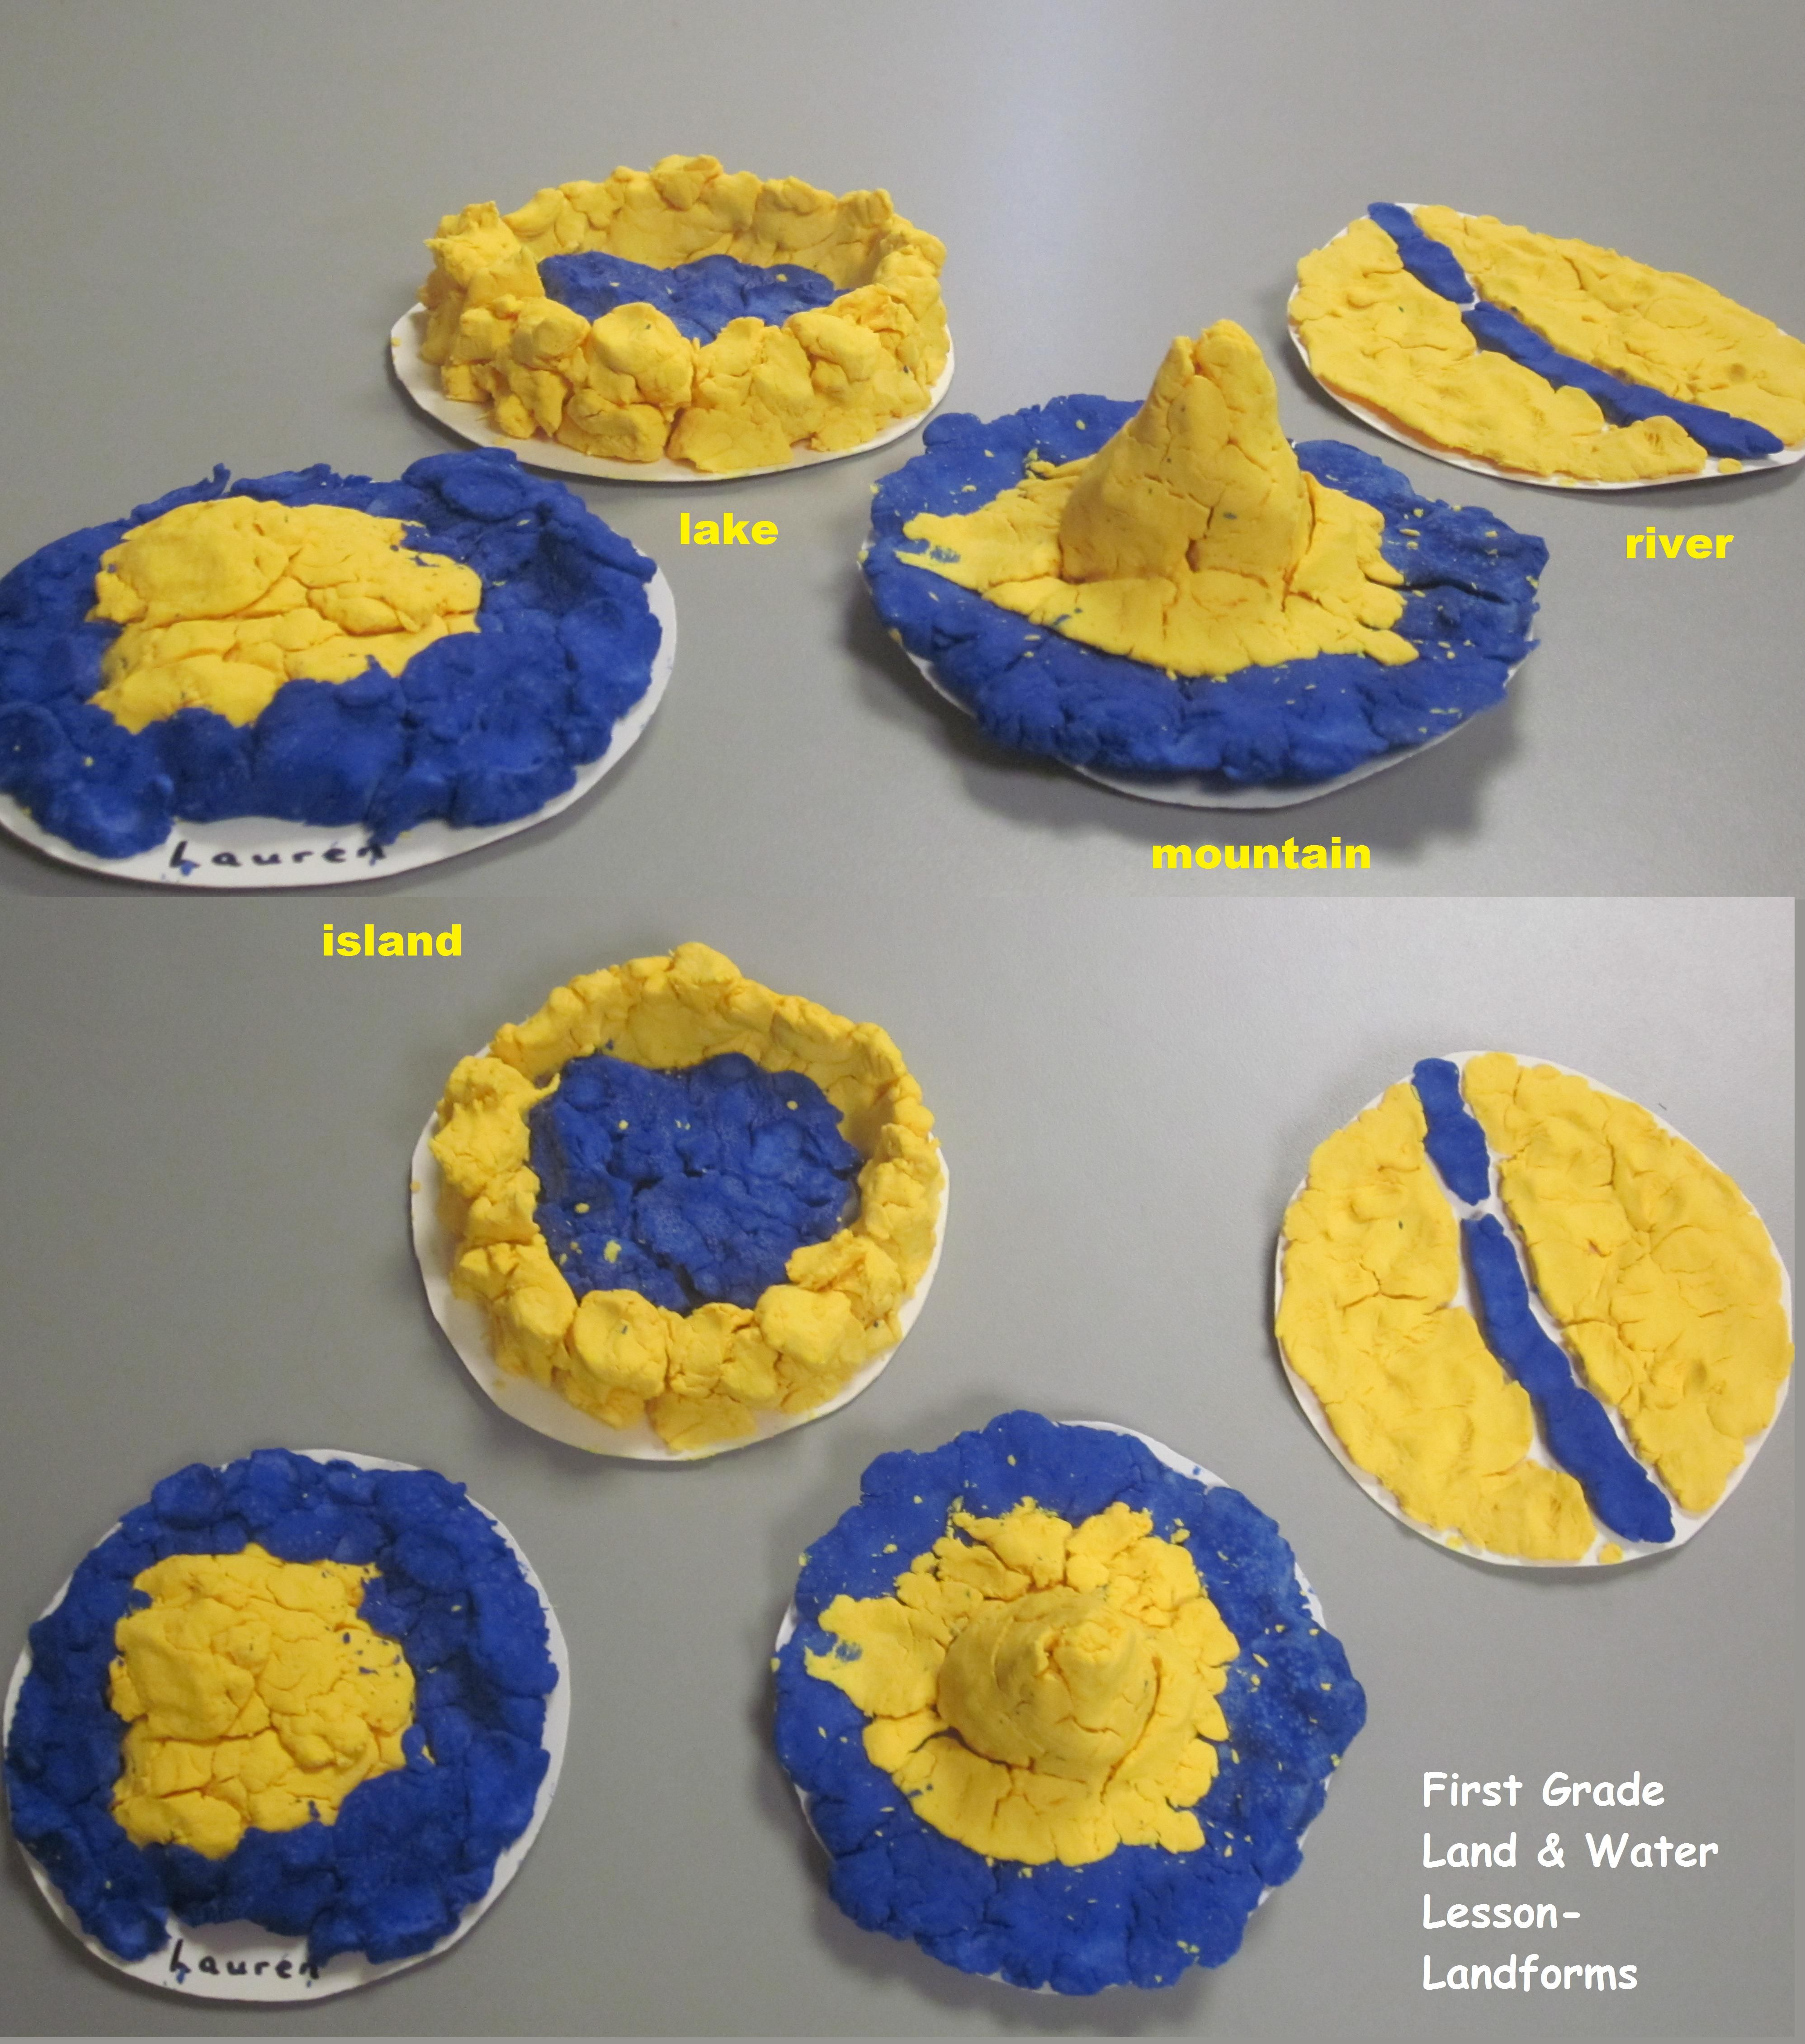 Grade Land Water Lesson Clay Landform Activity Students Could Demonstrate Their Knowledge Of Landforms And Water By Molding Various Landforms And Showing